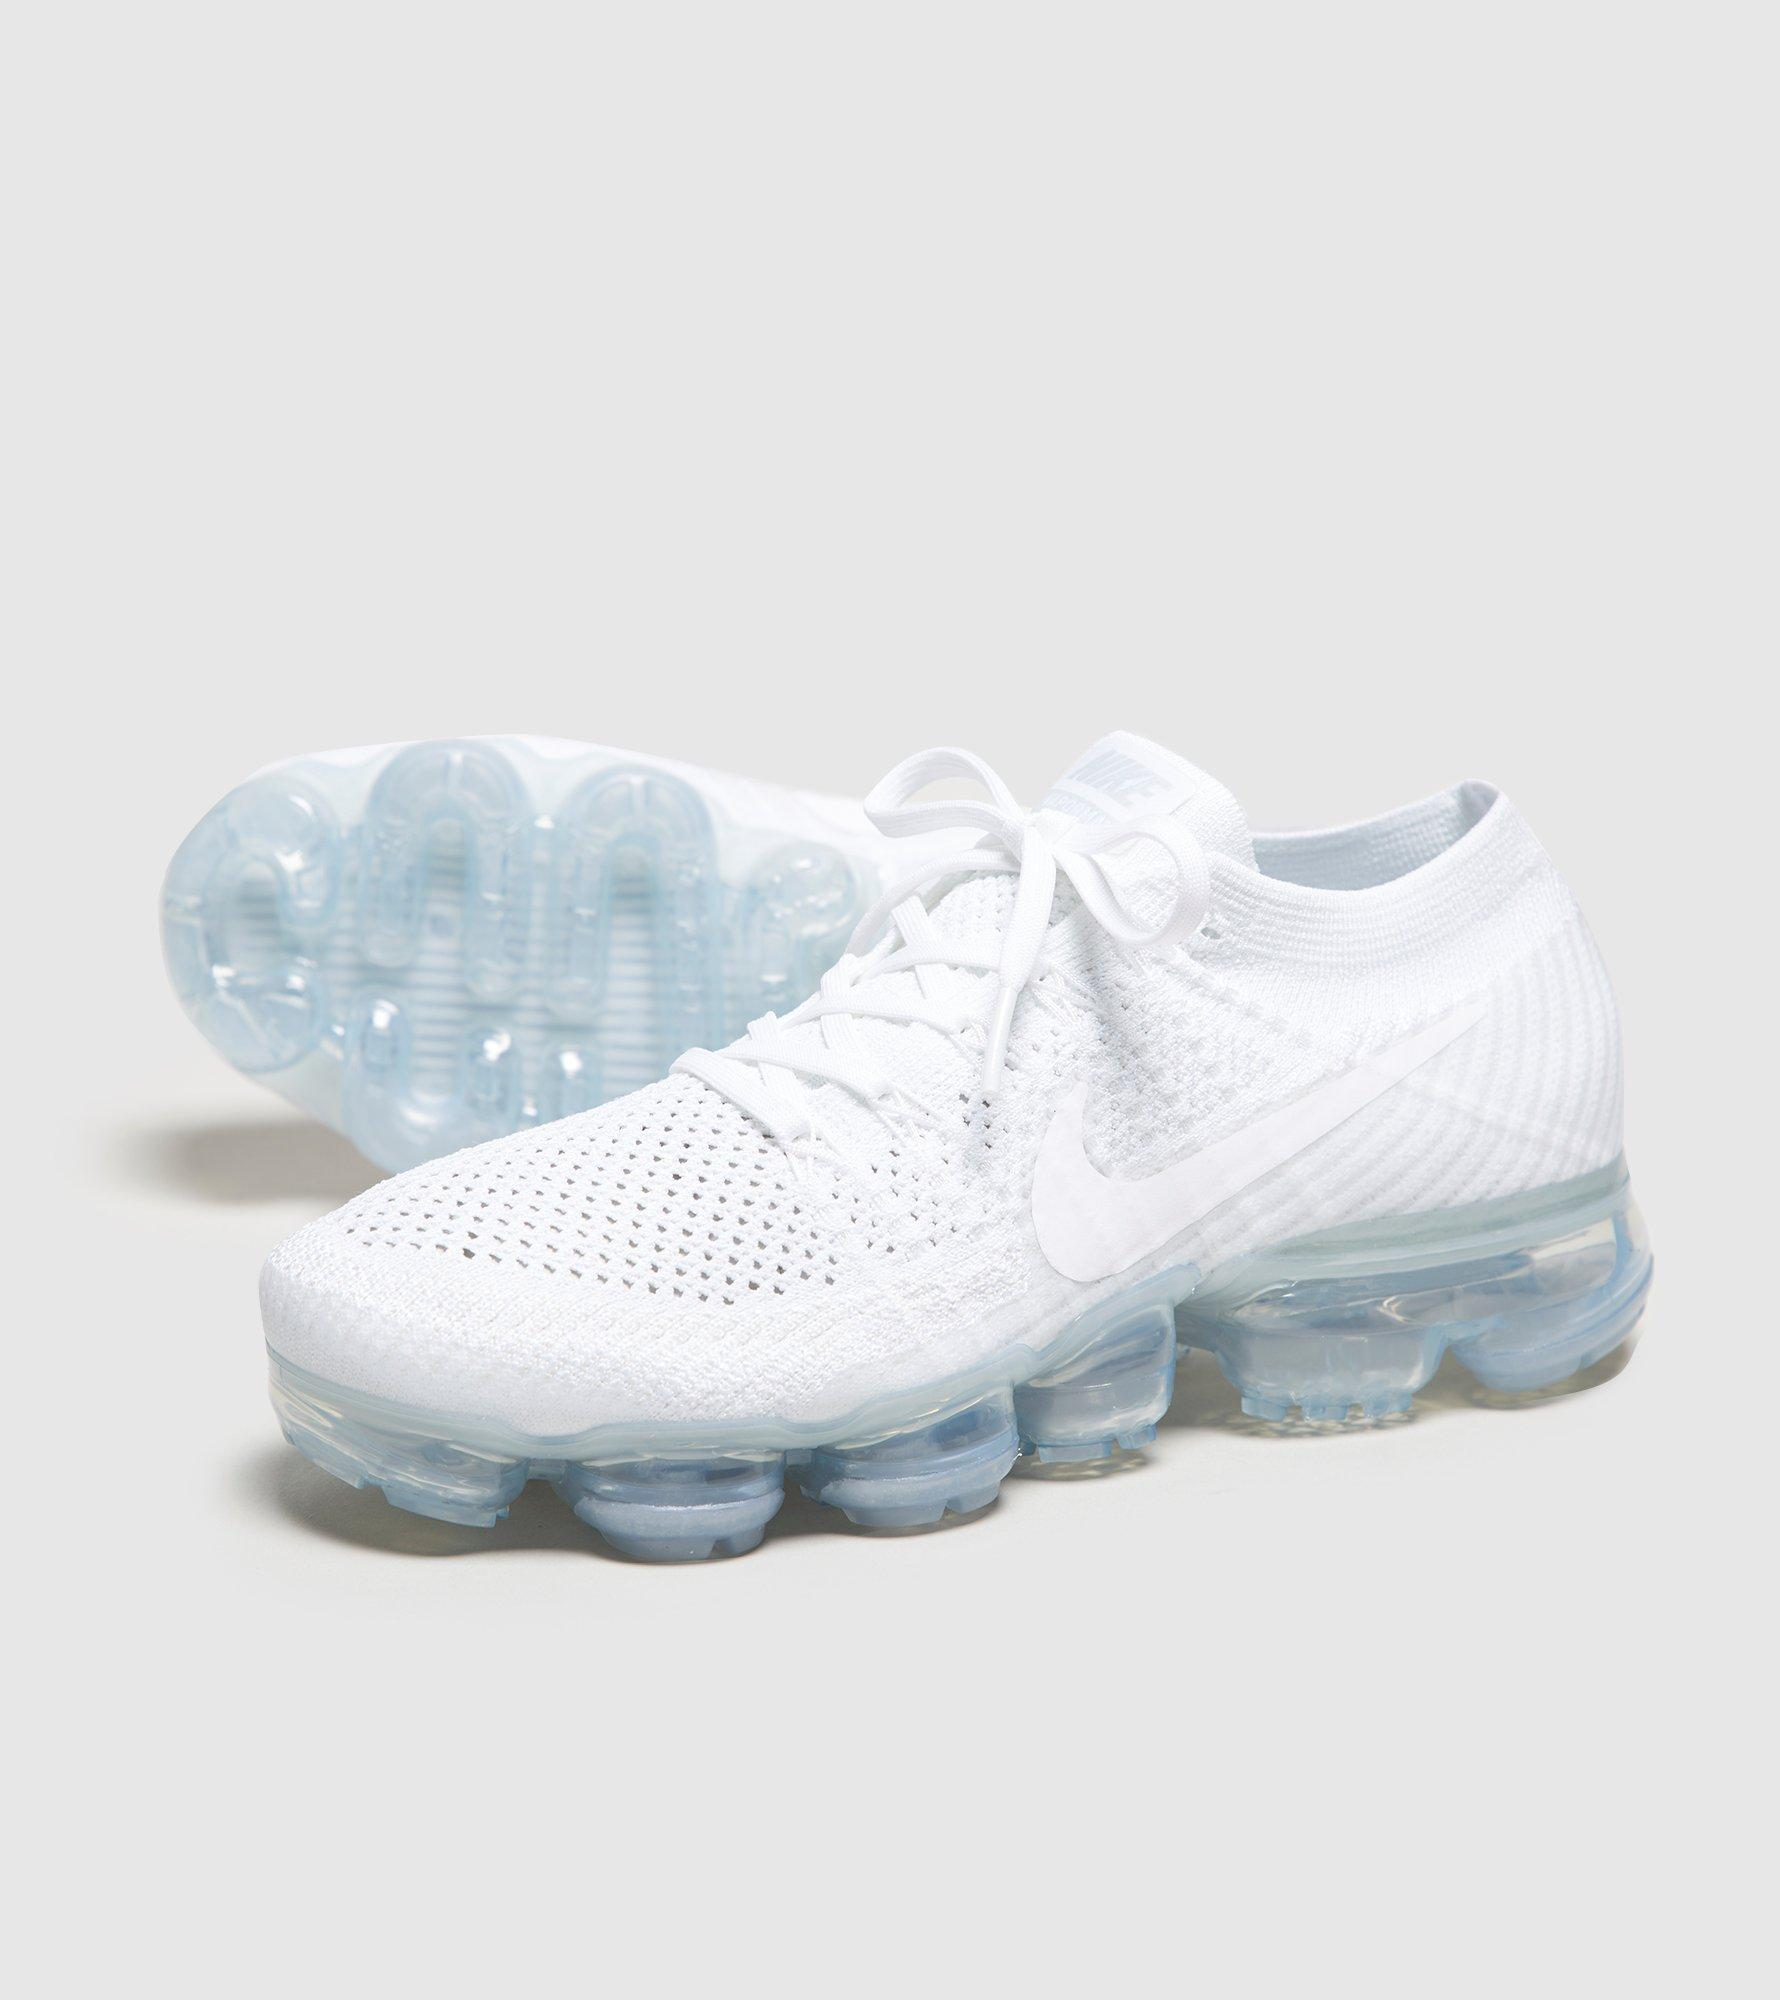 quality design c1016 61478 White Air Vapormax Flyknit 2 Women's